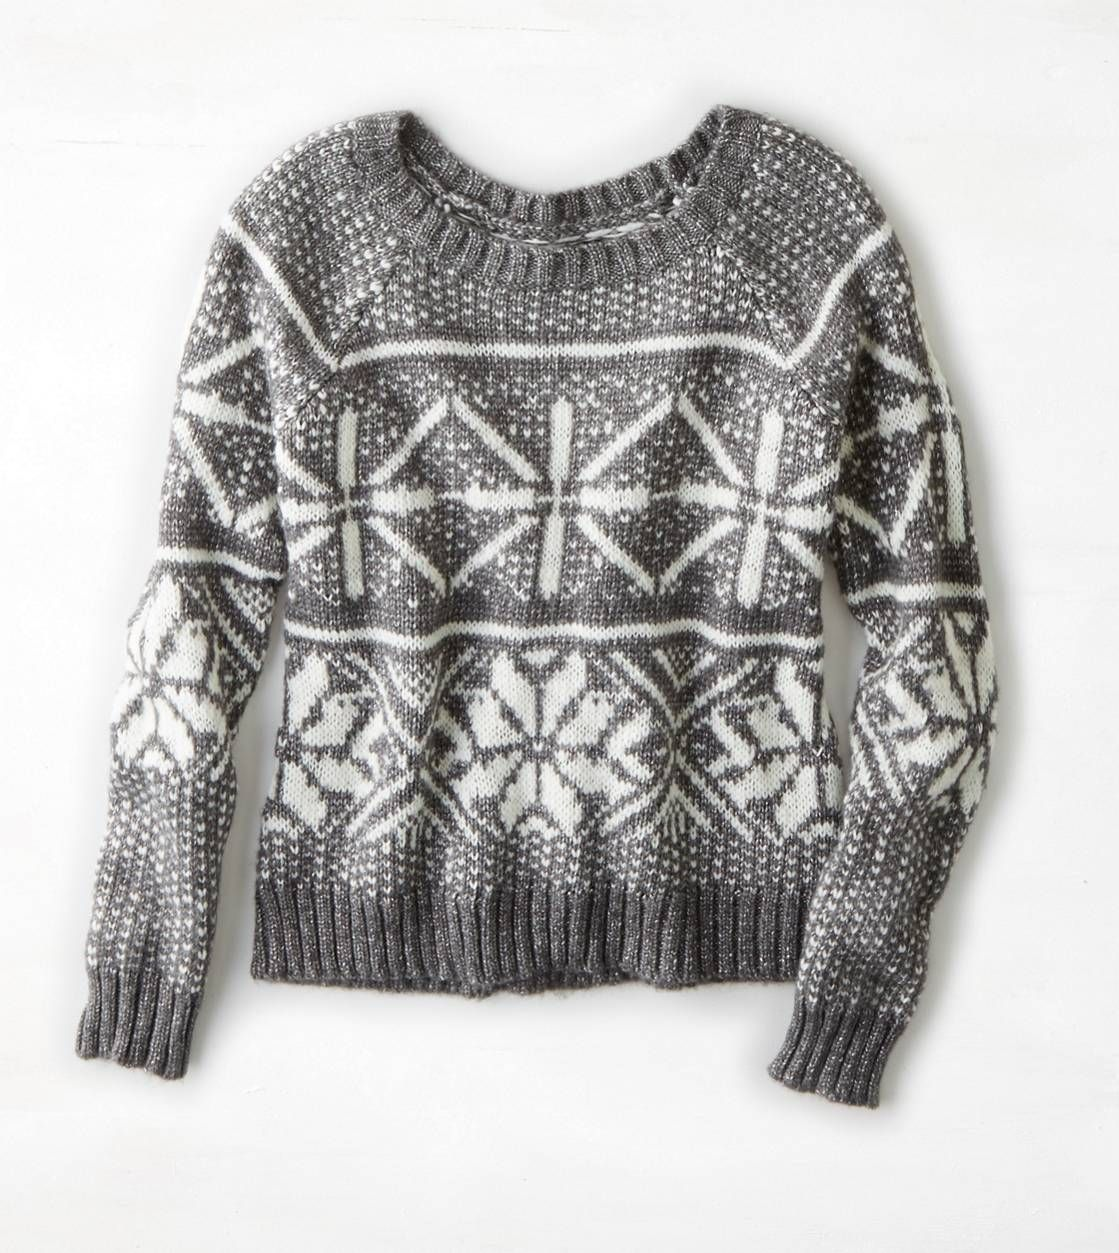 AEO Shimmery Fair Isle Sweater Size:M ONLINE ONLY | Style ...